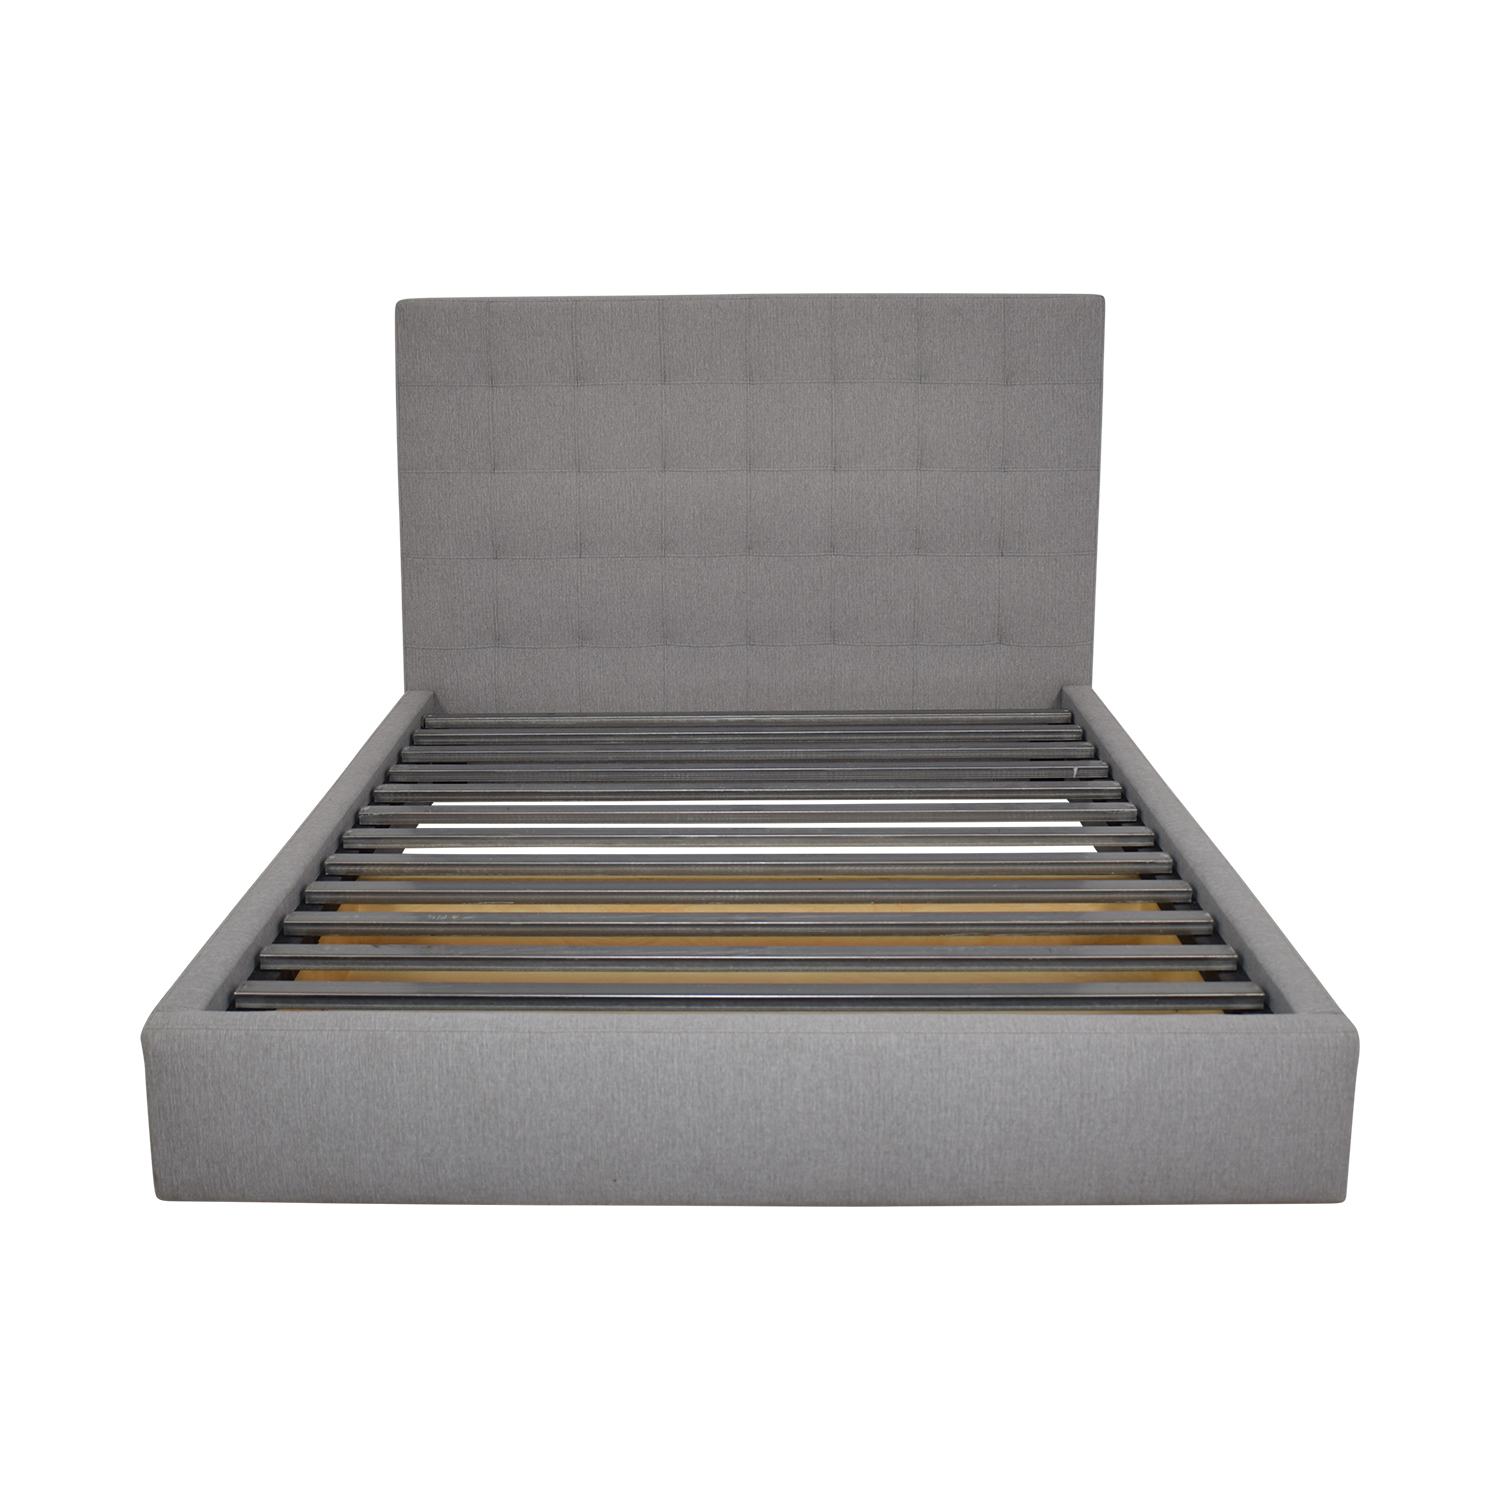 shop Room & Board Room & Board Avery Upholstered Bed with Storage Drawer online